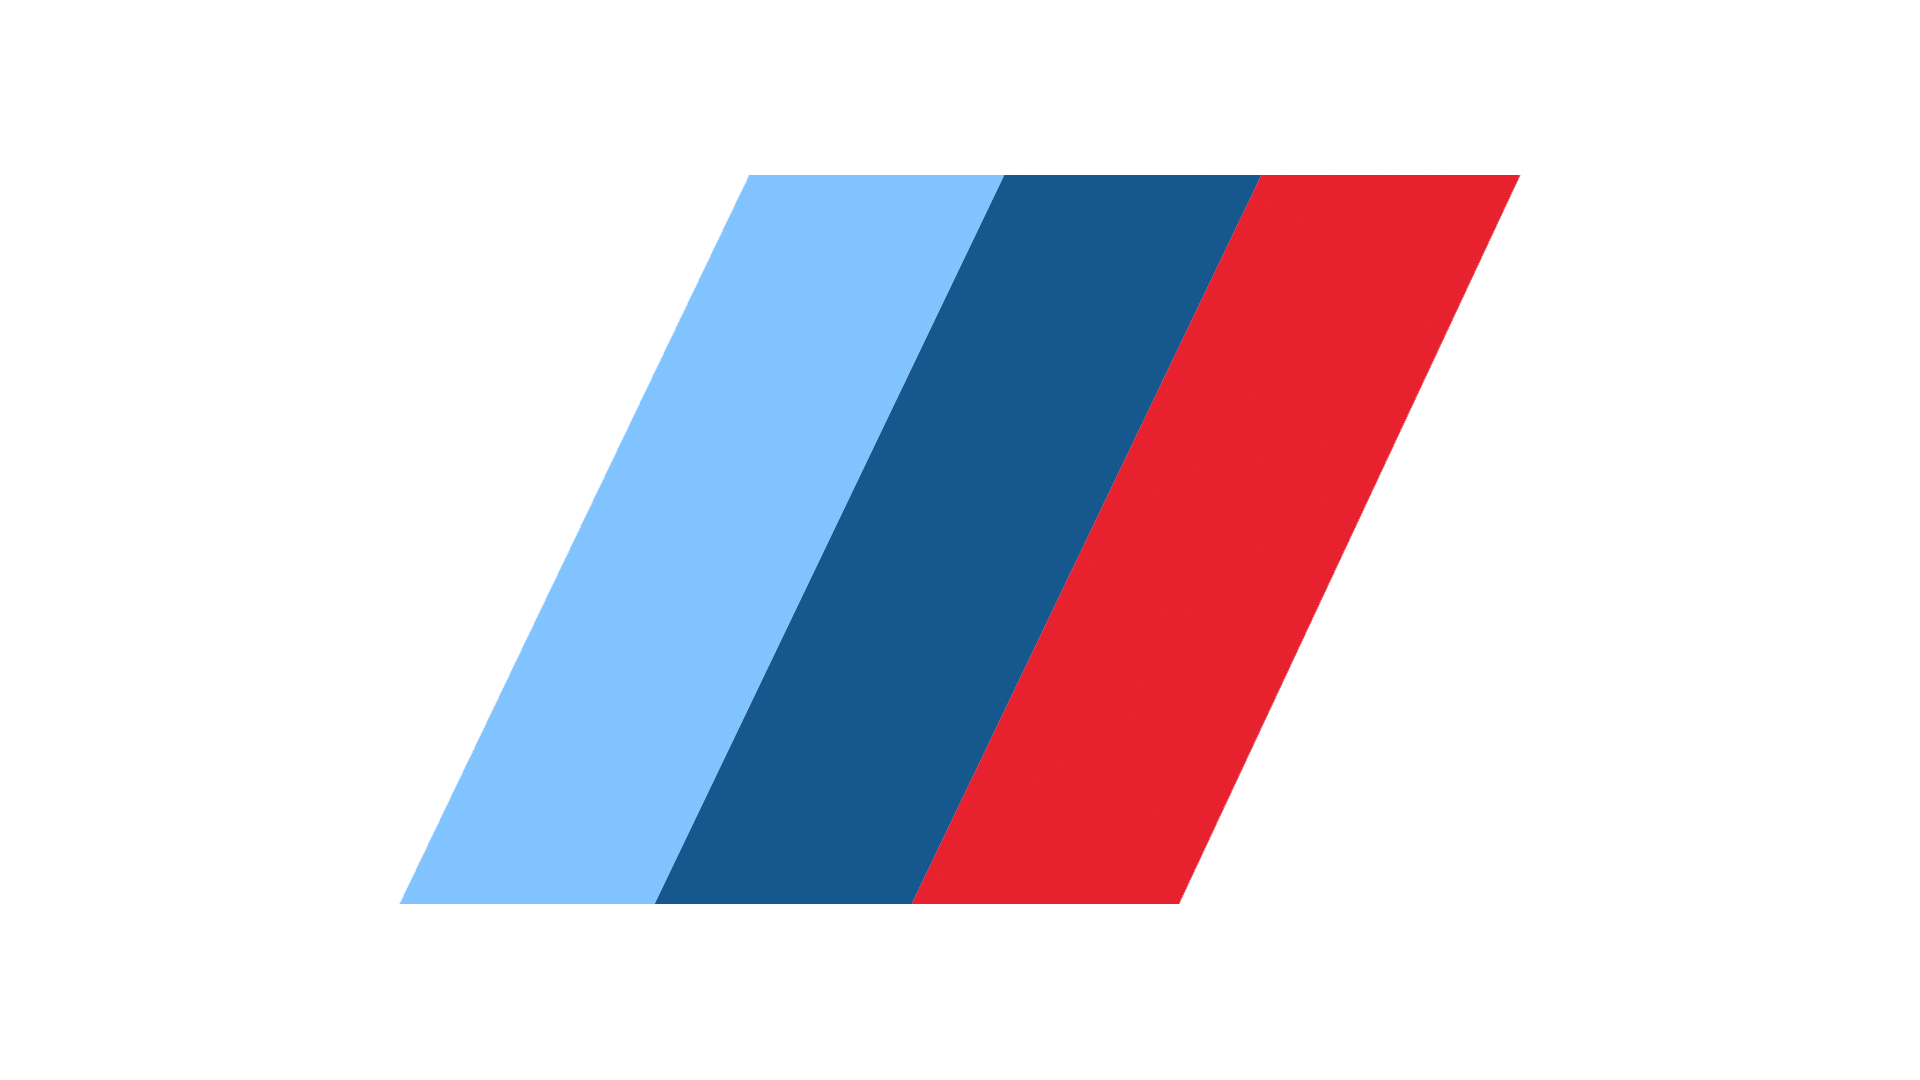 3 stripes png. Bmw m logo hd